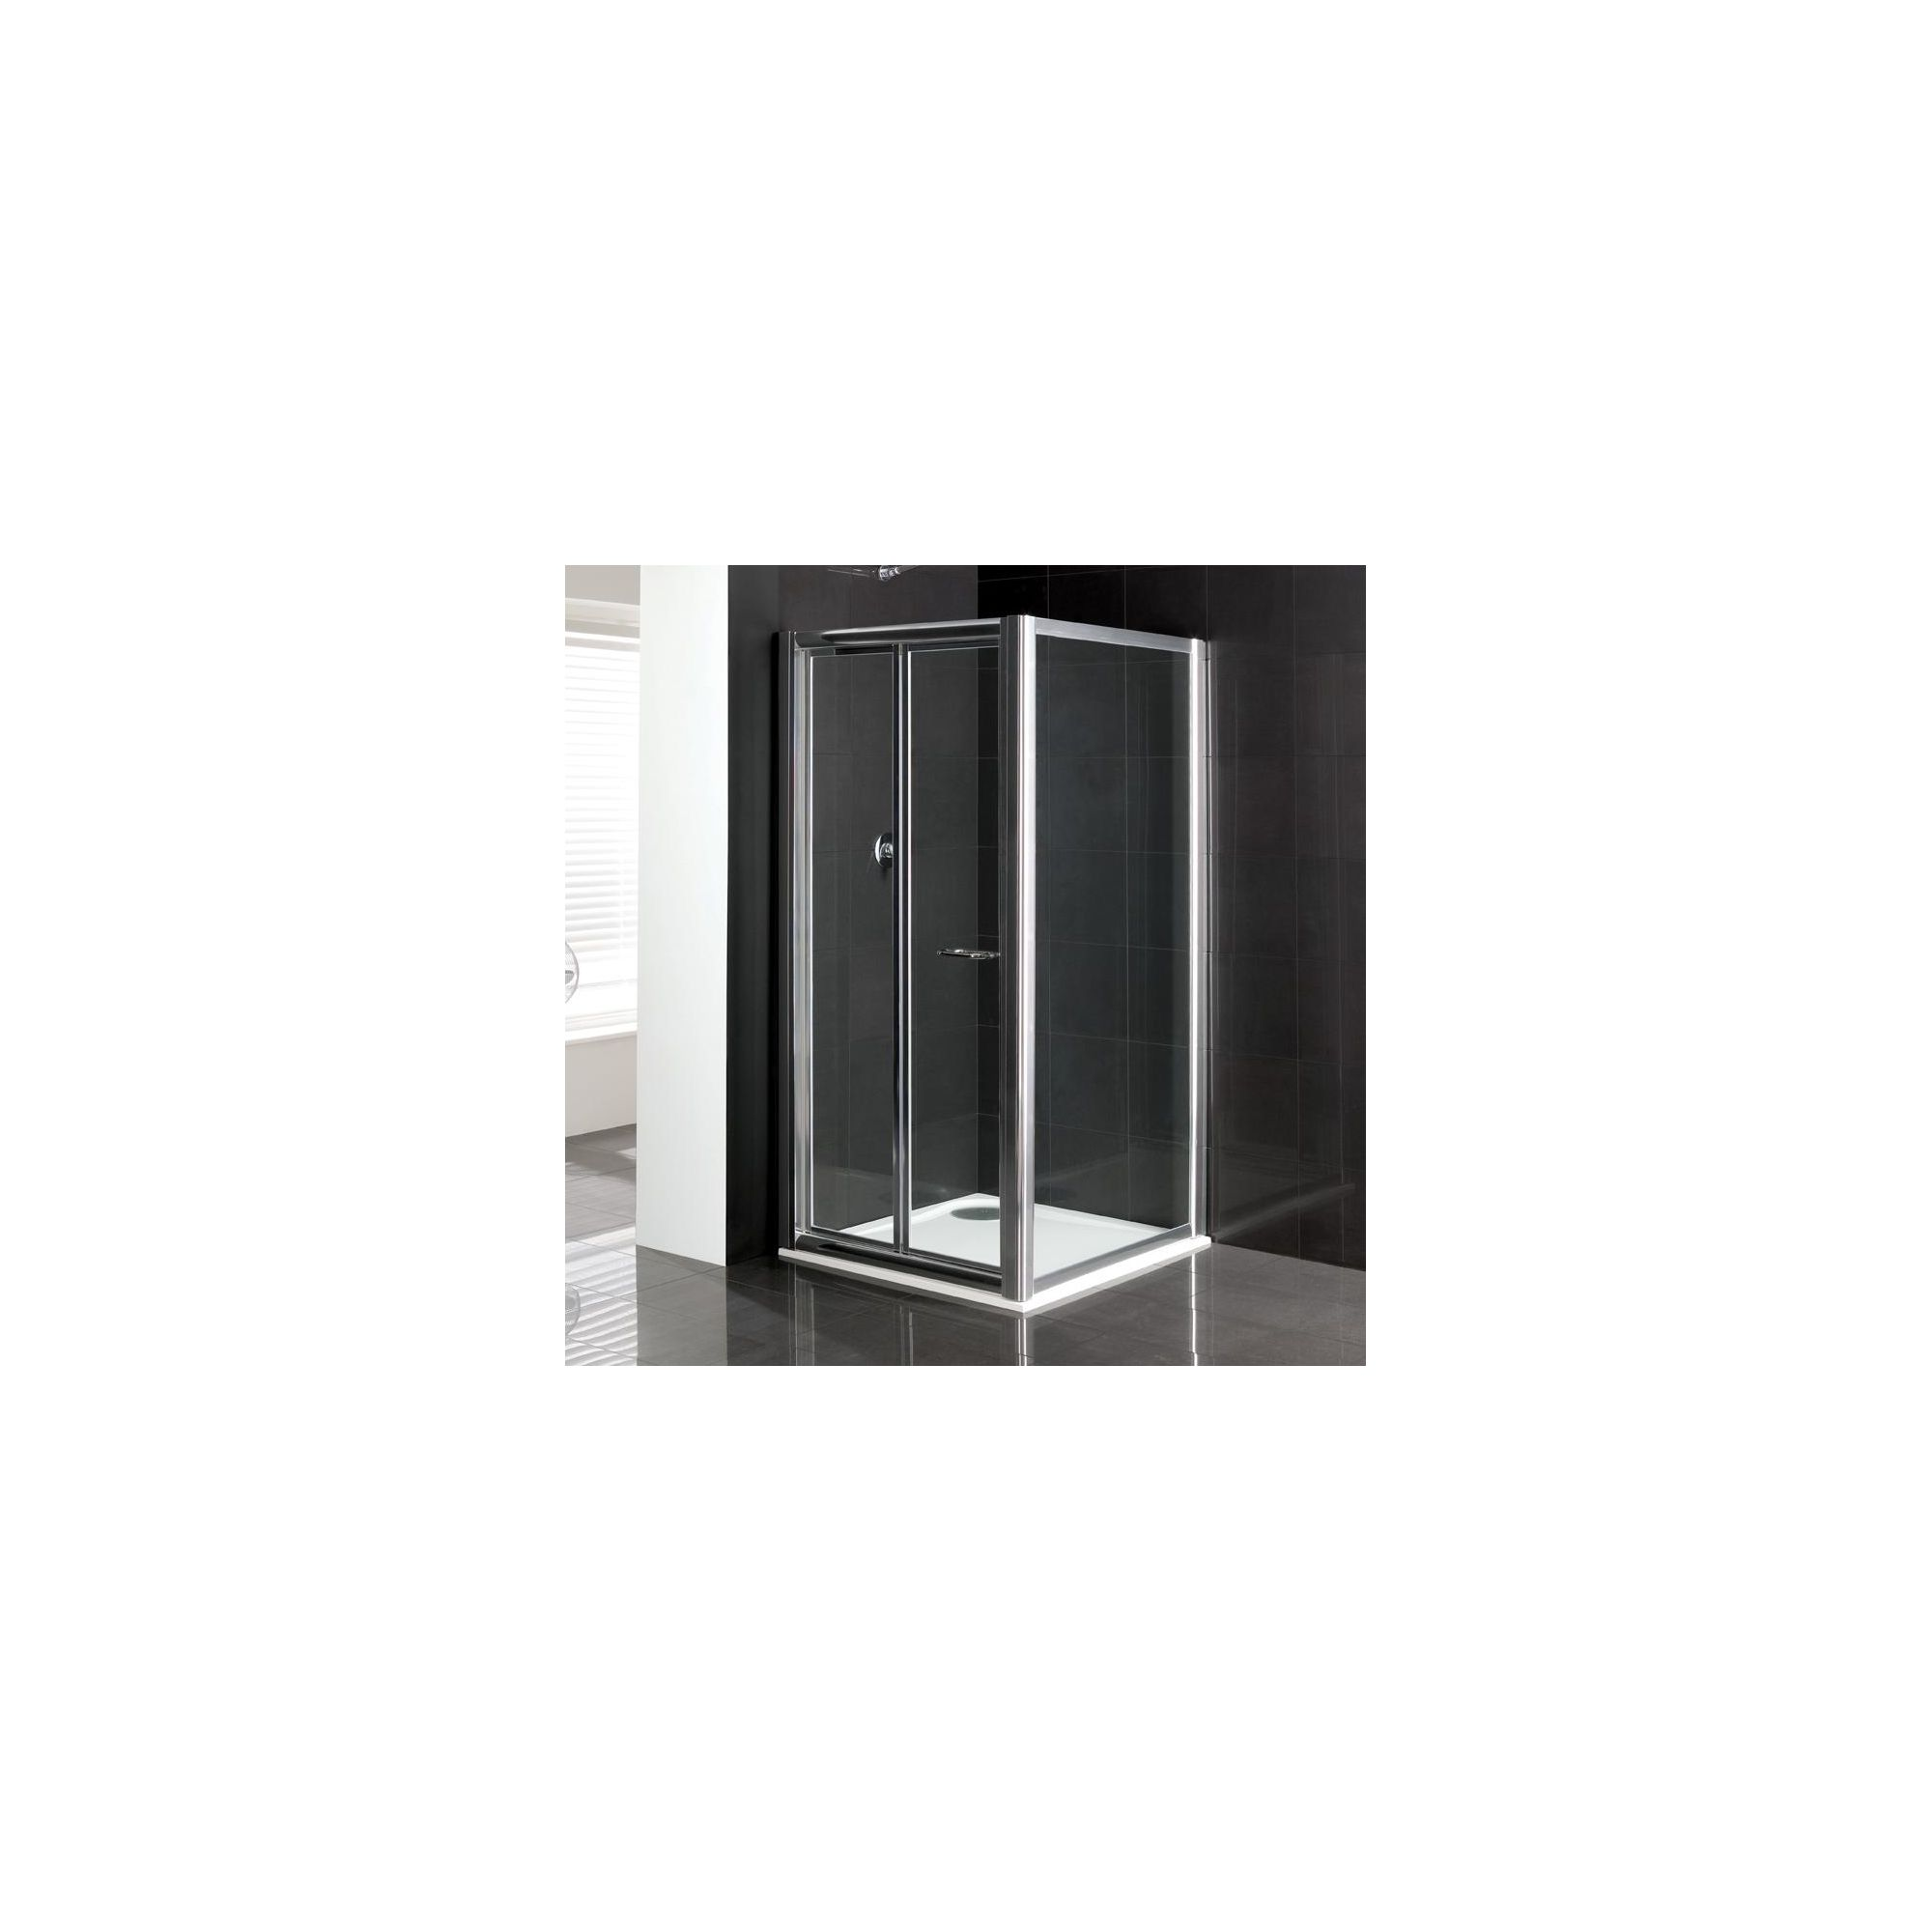 Duchy Elite Silver Bi-Fold Door Shower Enclosure with Towel Rail, 800mm x 760mm, Standard Tray, 6mm Glass at Tesco Direct